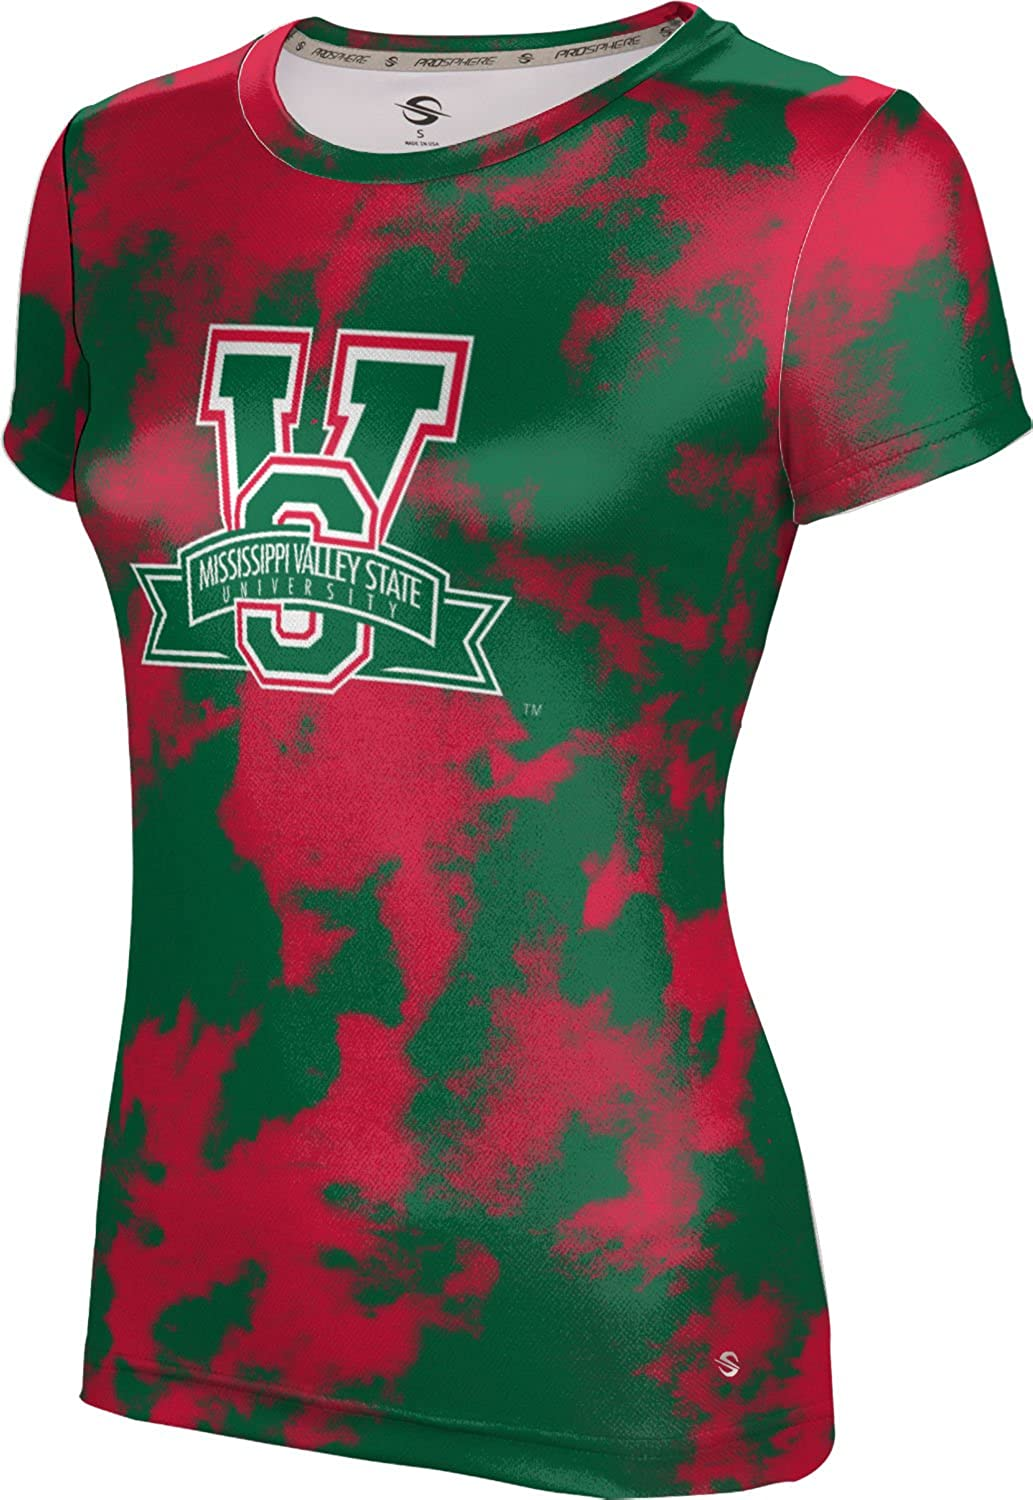 ProSphere Mississippi Valley State University Girls Performance T-Shirt Grunge